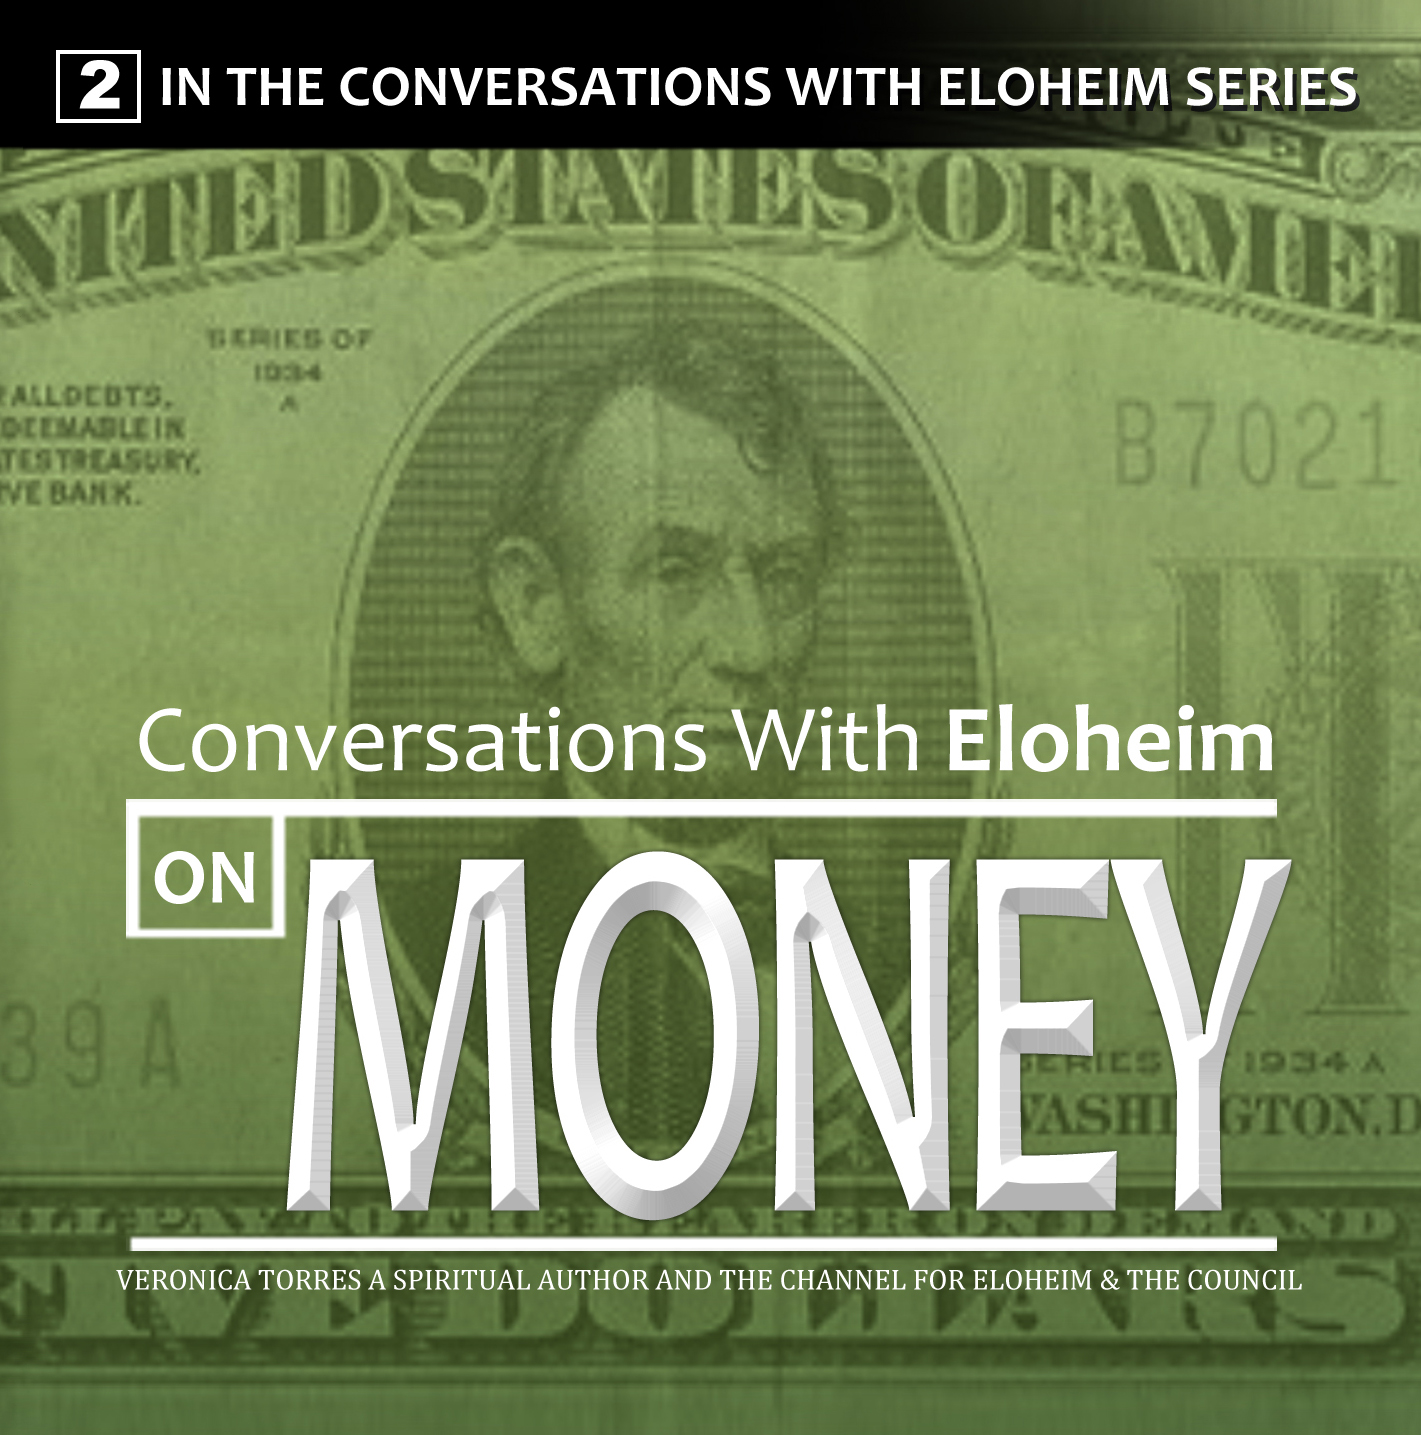 Click here for our conversation with Eloheim about MONEY